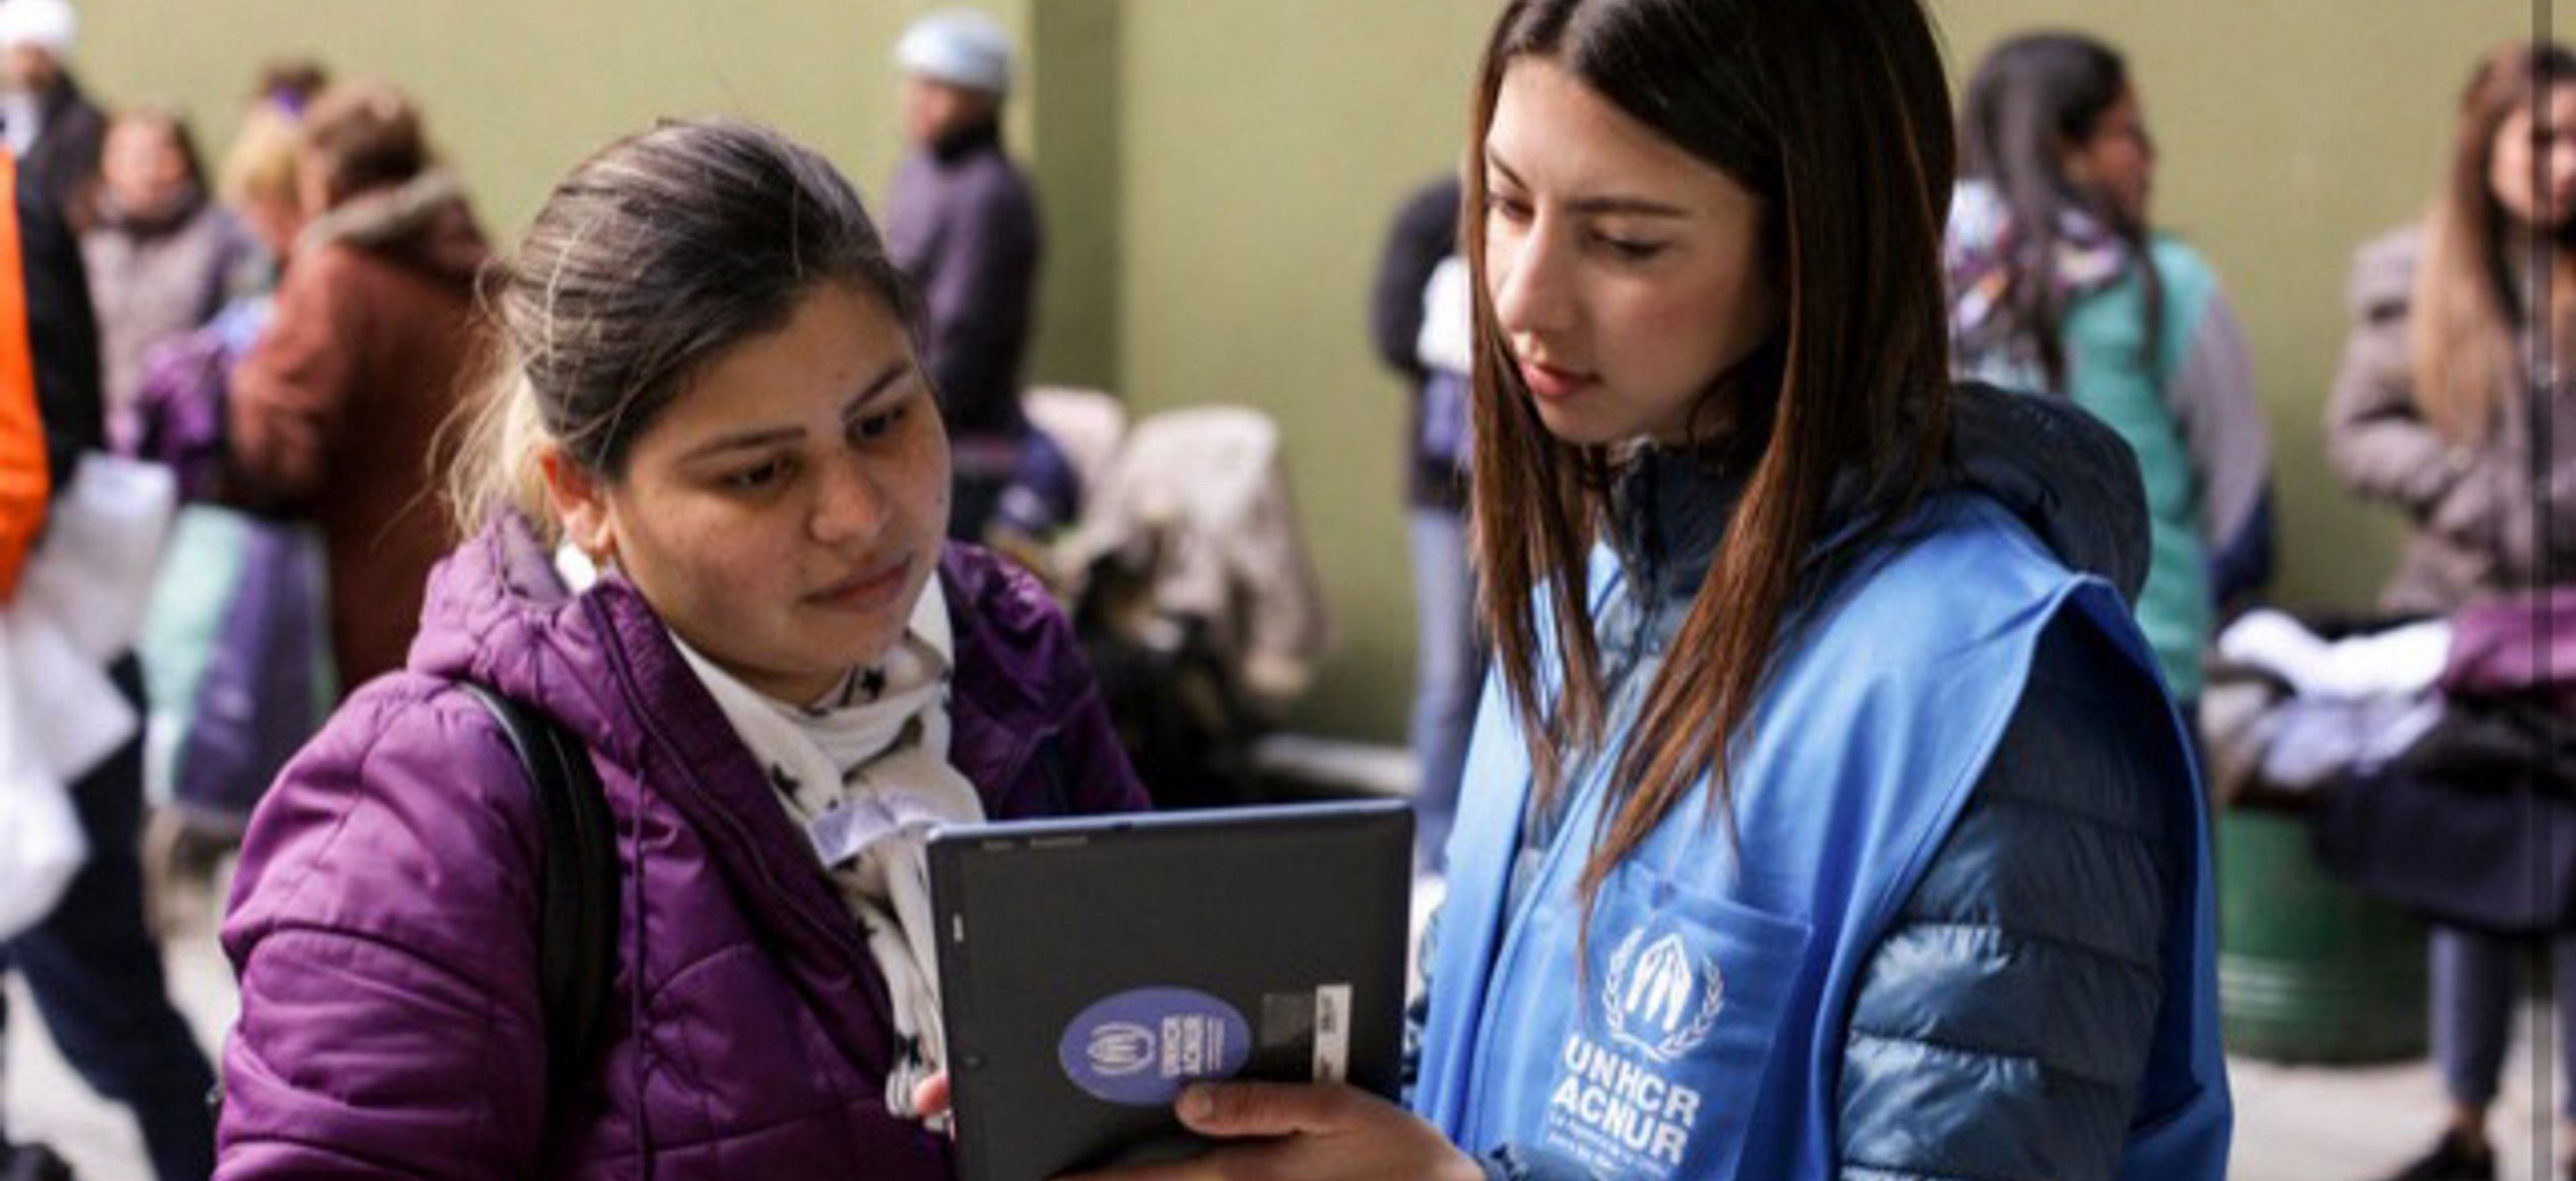 An IRAP Law School Chapter alumna wears a UNHCR vest and holds a tablet as she meets with a displaced woman wearing a purple winter jacket.